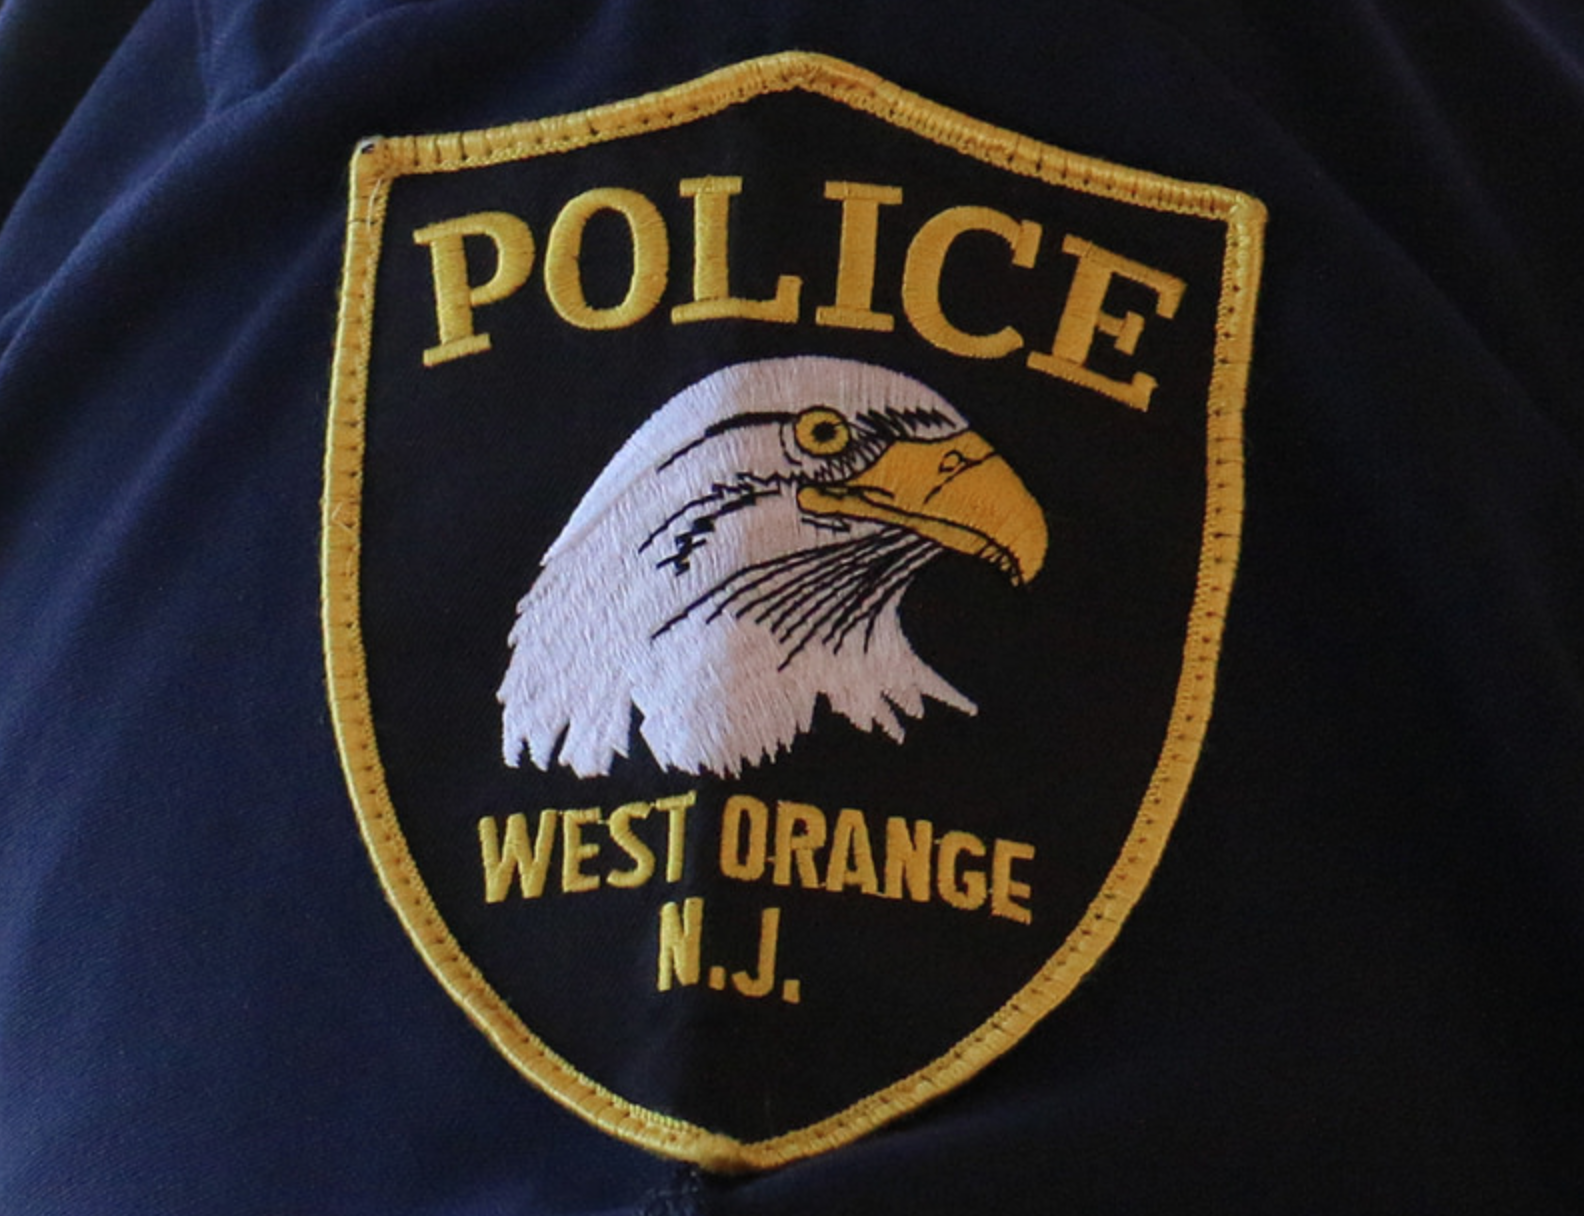 64e1827dd6cd36921a84_West_Orange_Police.jpg